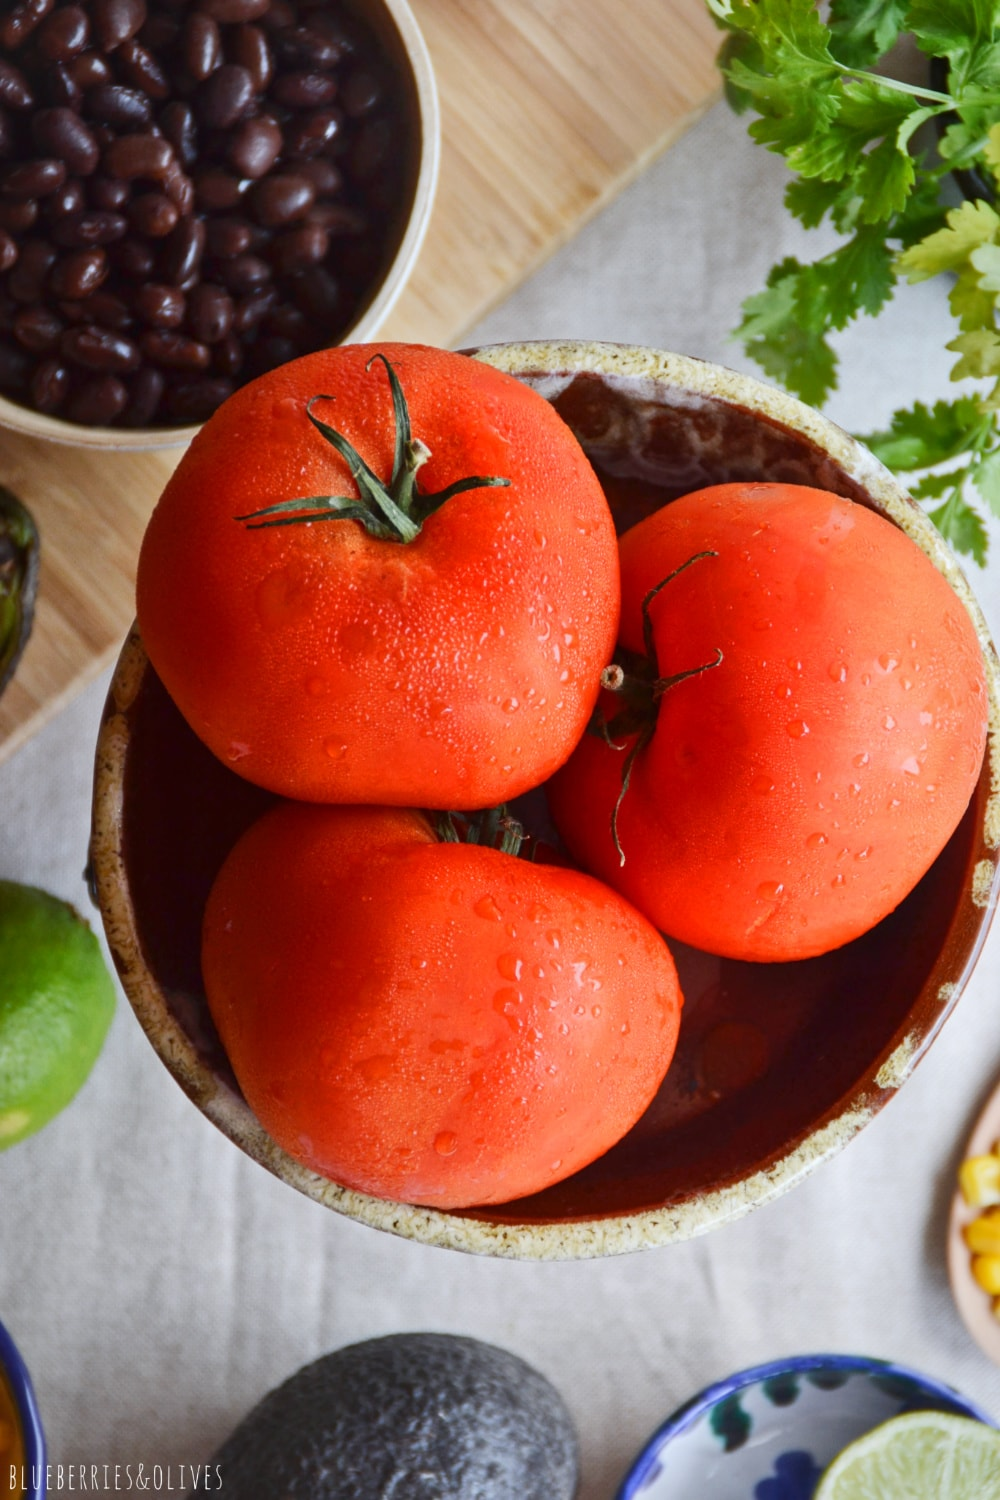 FRESH TOMATES WITH WATER DROPS FOR STUFFED TOMATOES RECIPE